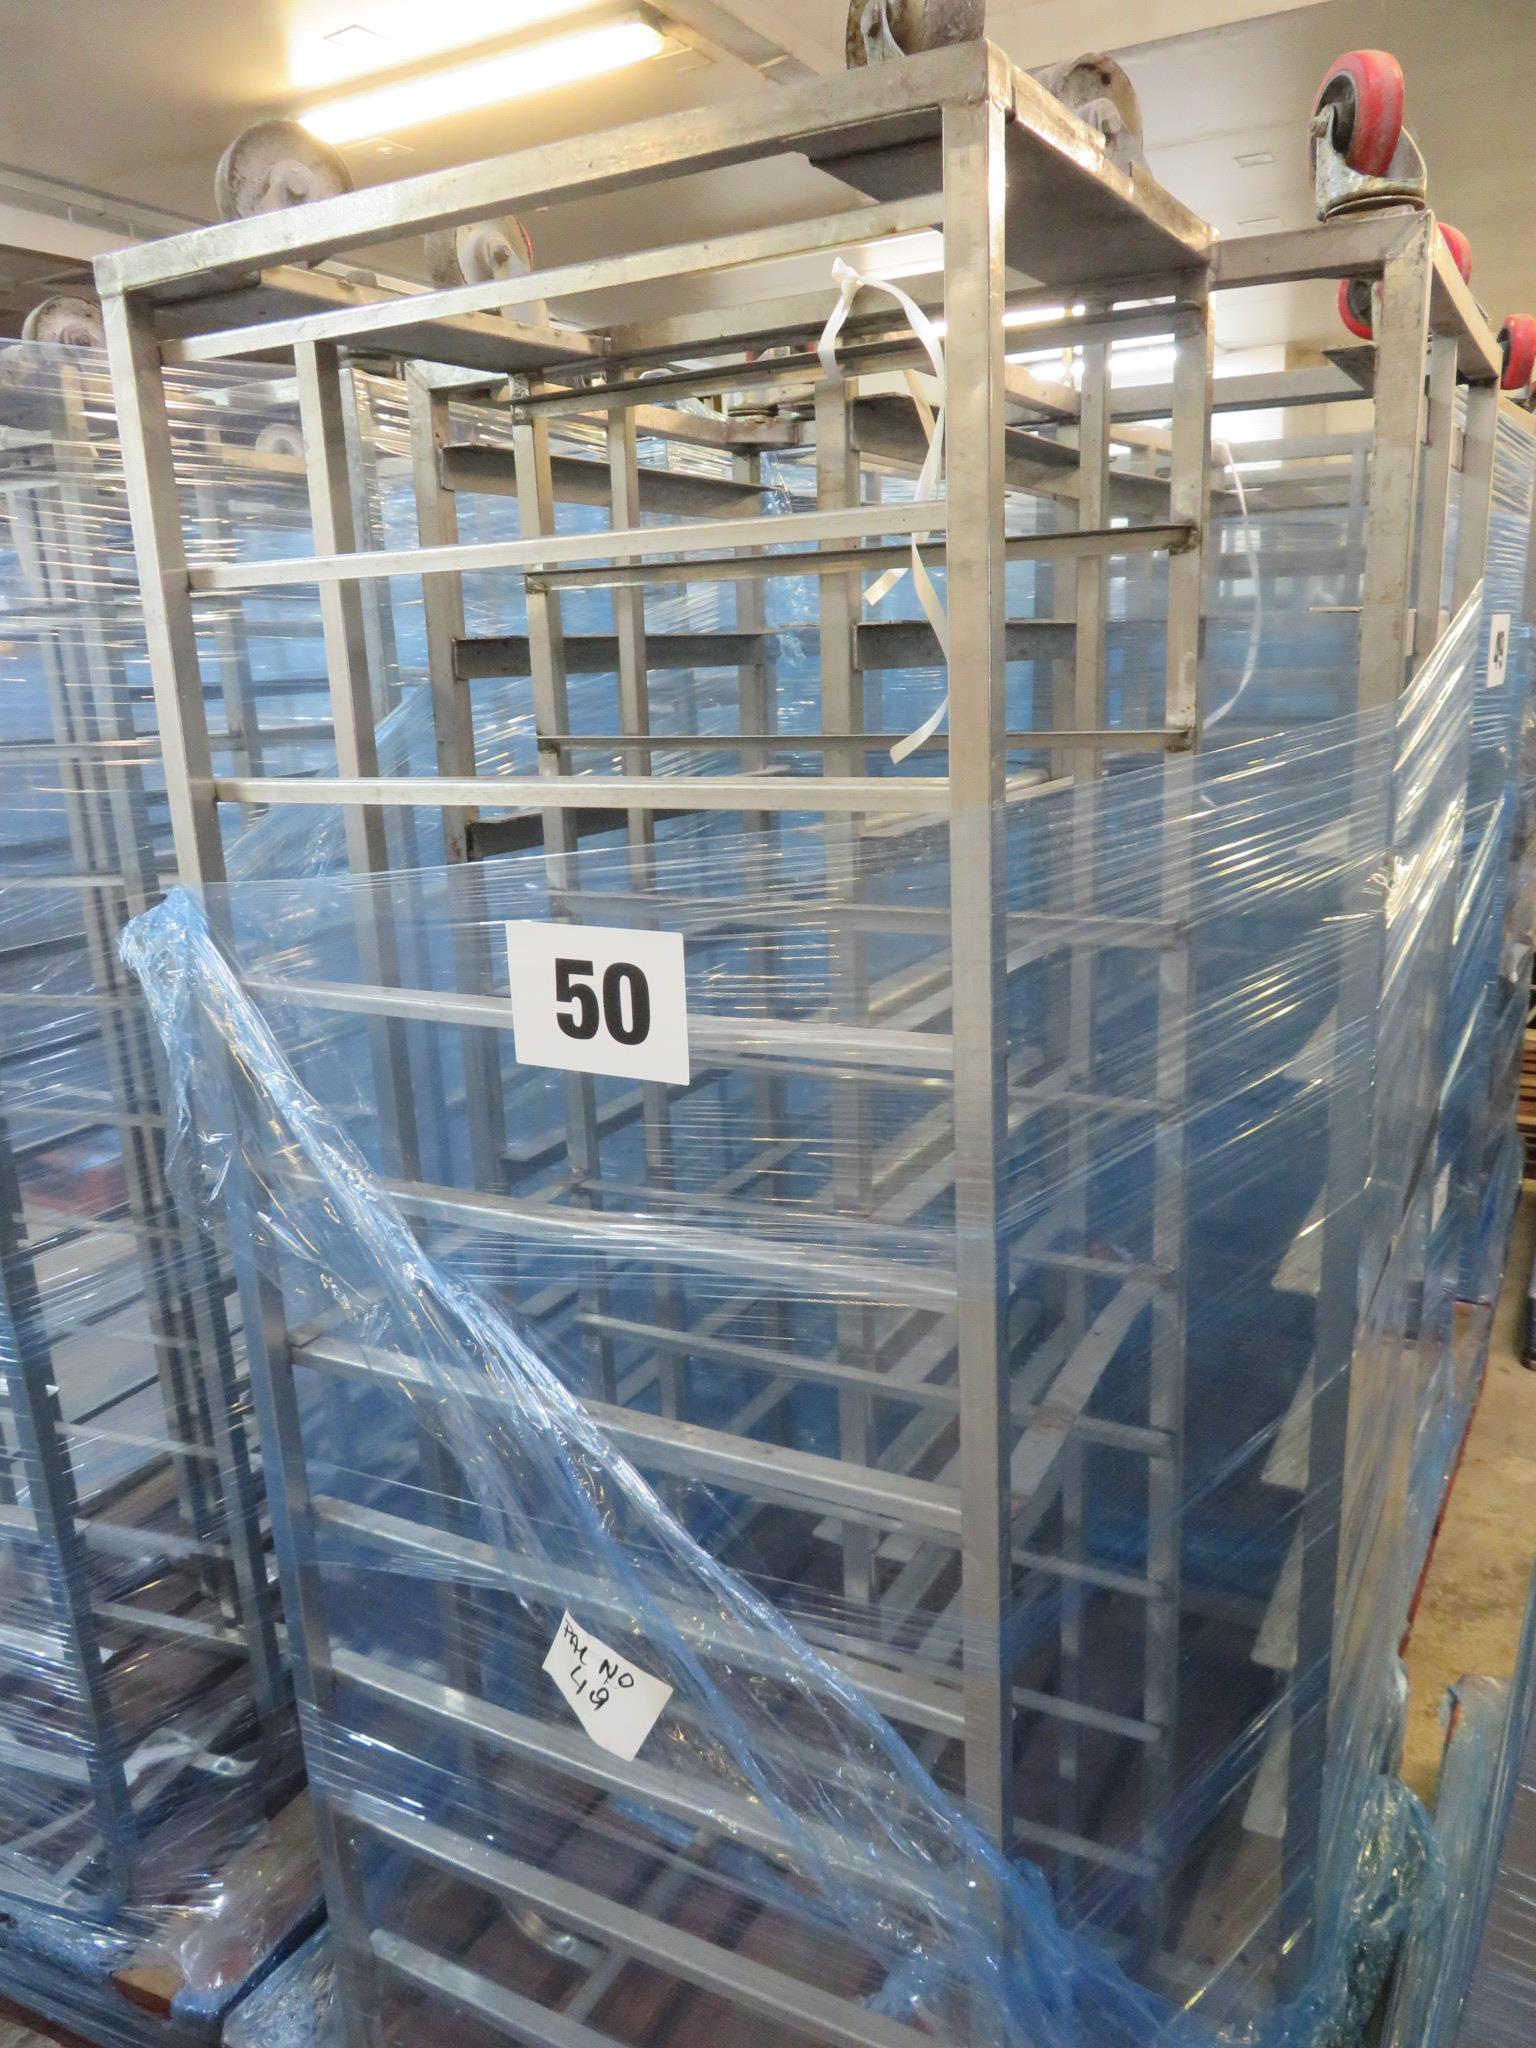 Lot 50 - 2 x S/s Racks:- 1 x S/s Rack capable of taking 10 trays.Approx 430 x 650 x 1800mm high LO£10